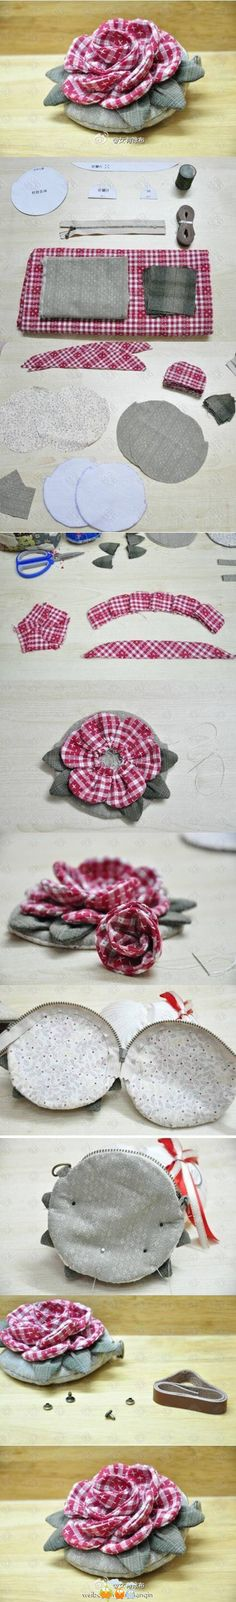 rose purse....(oh my goodness!... This purse is so cute!....and the picture tutorial is so inspiring!...